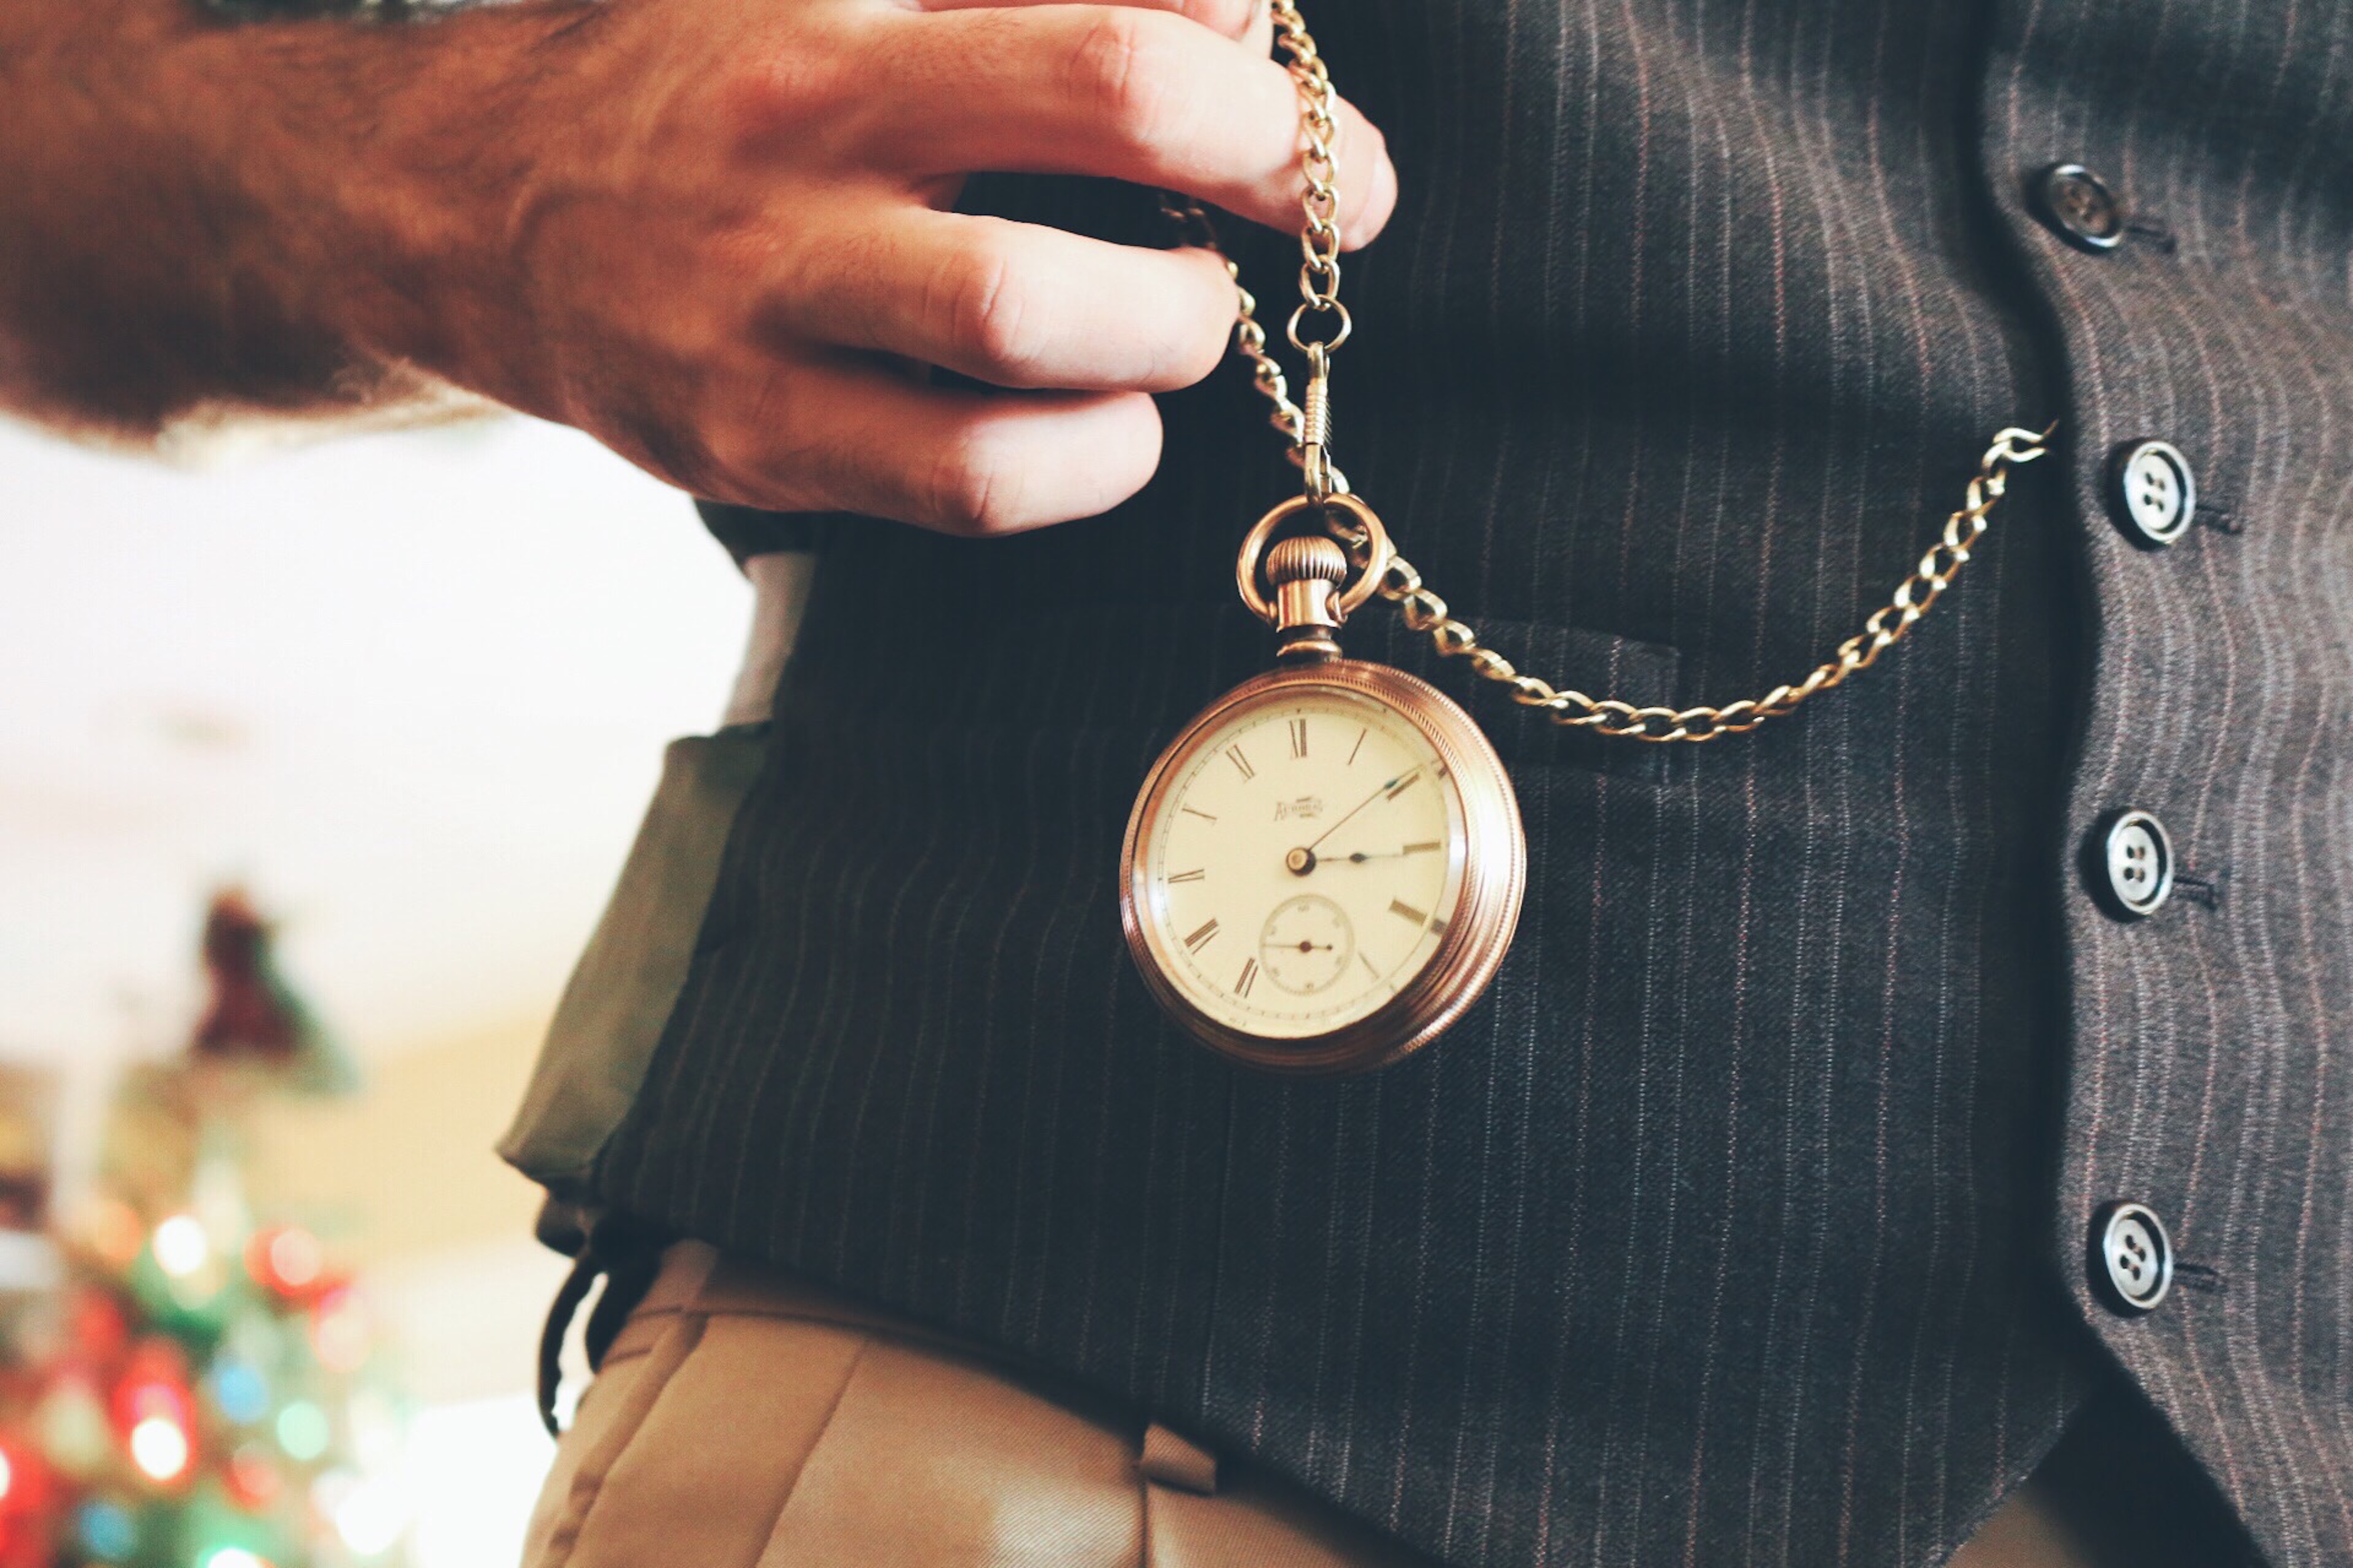 Pocket watch held next to a waistcoat